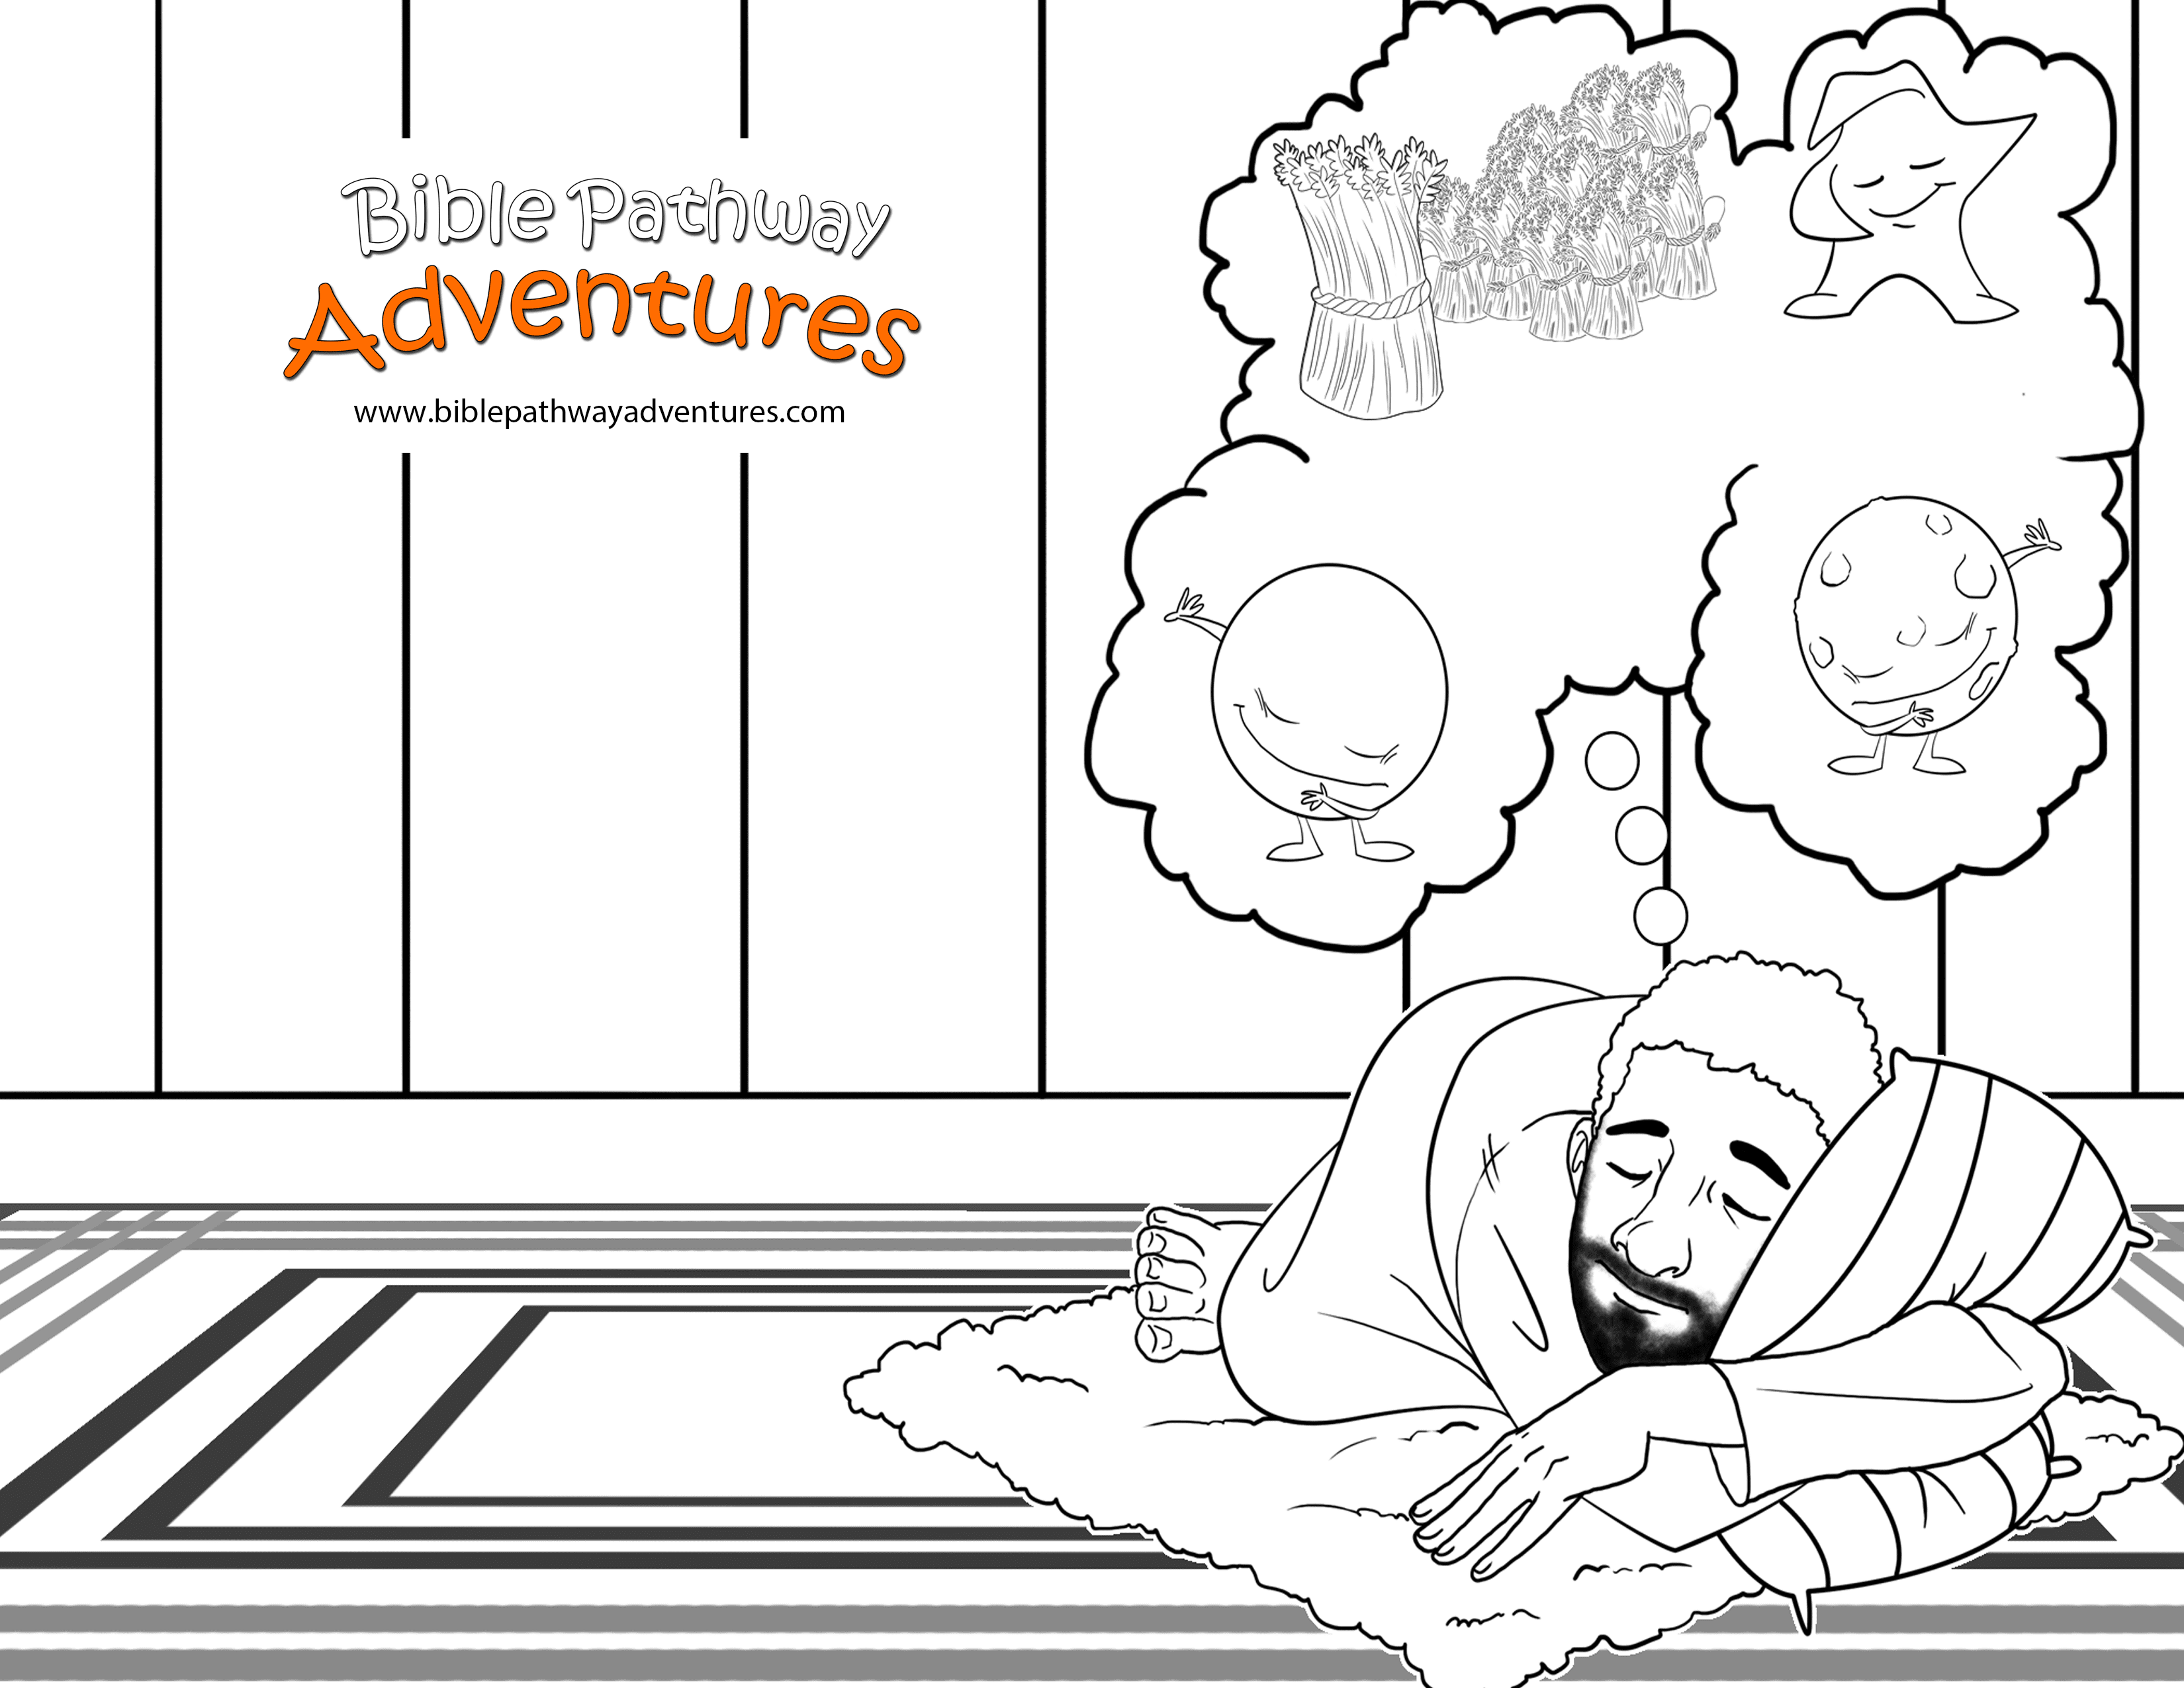 joseph the dreamer coloring pages joseph and his brothers coloring page sunday school dreamer coloring joseph the pages